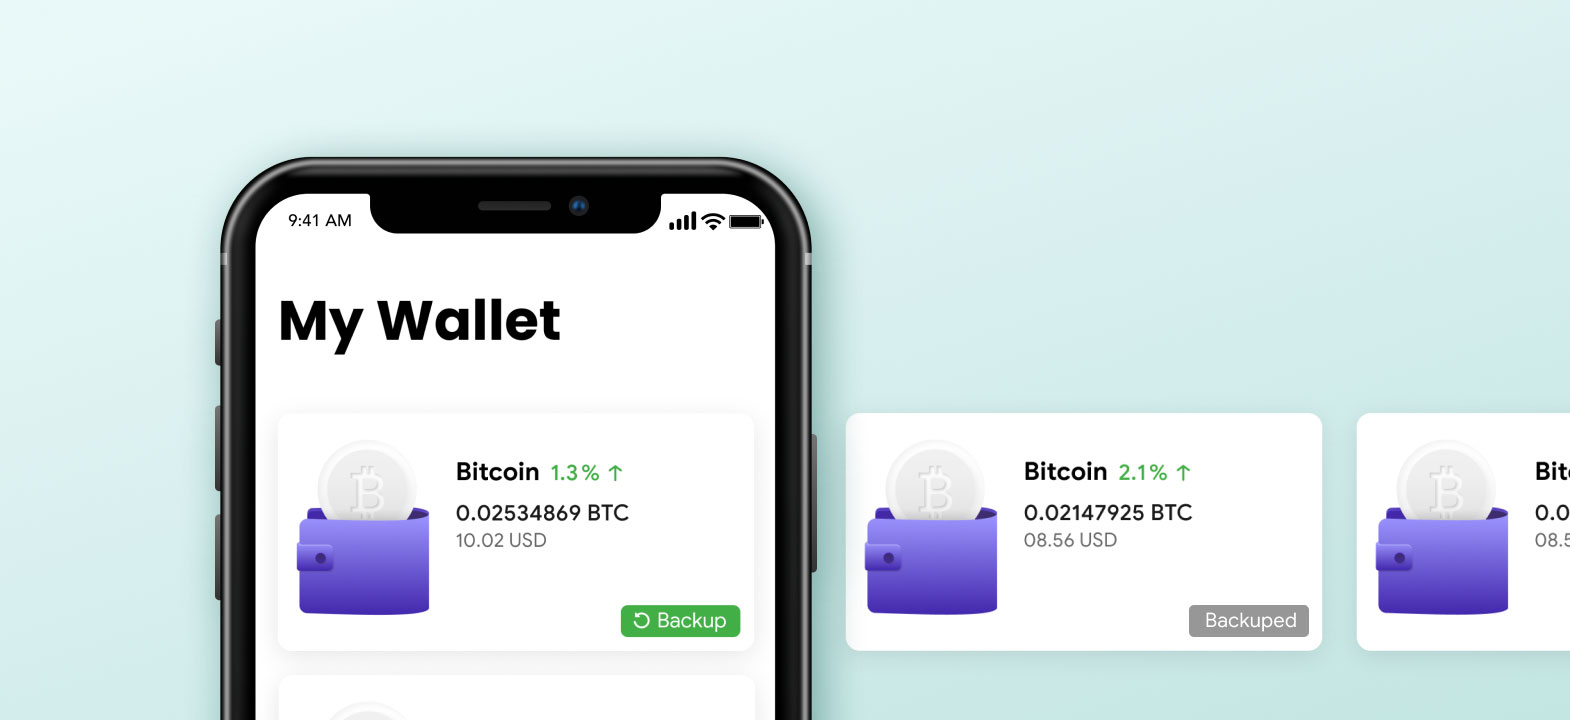 How to backup crypto wallet